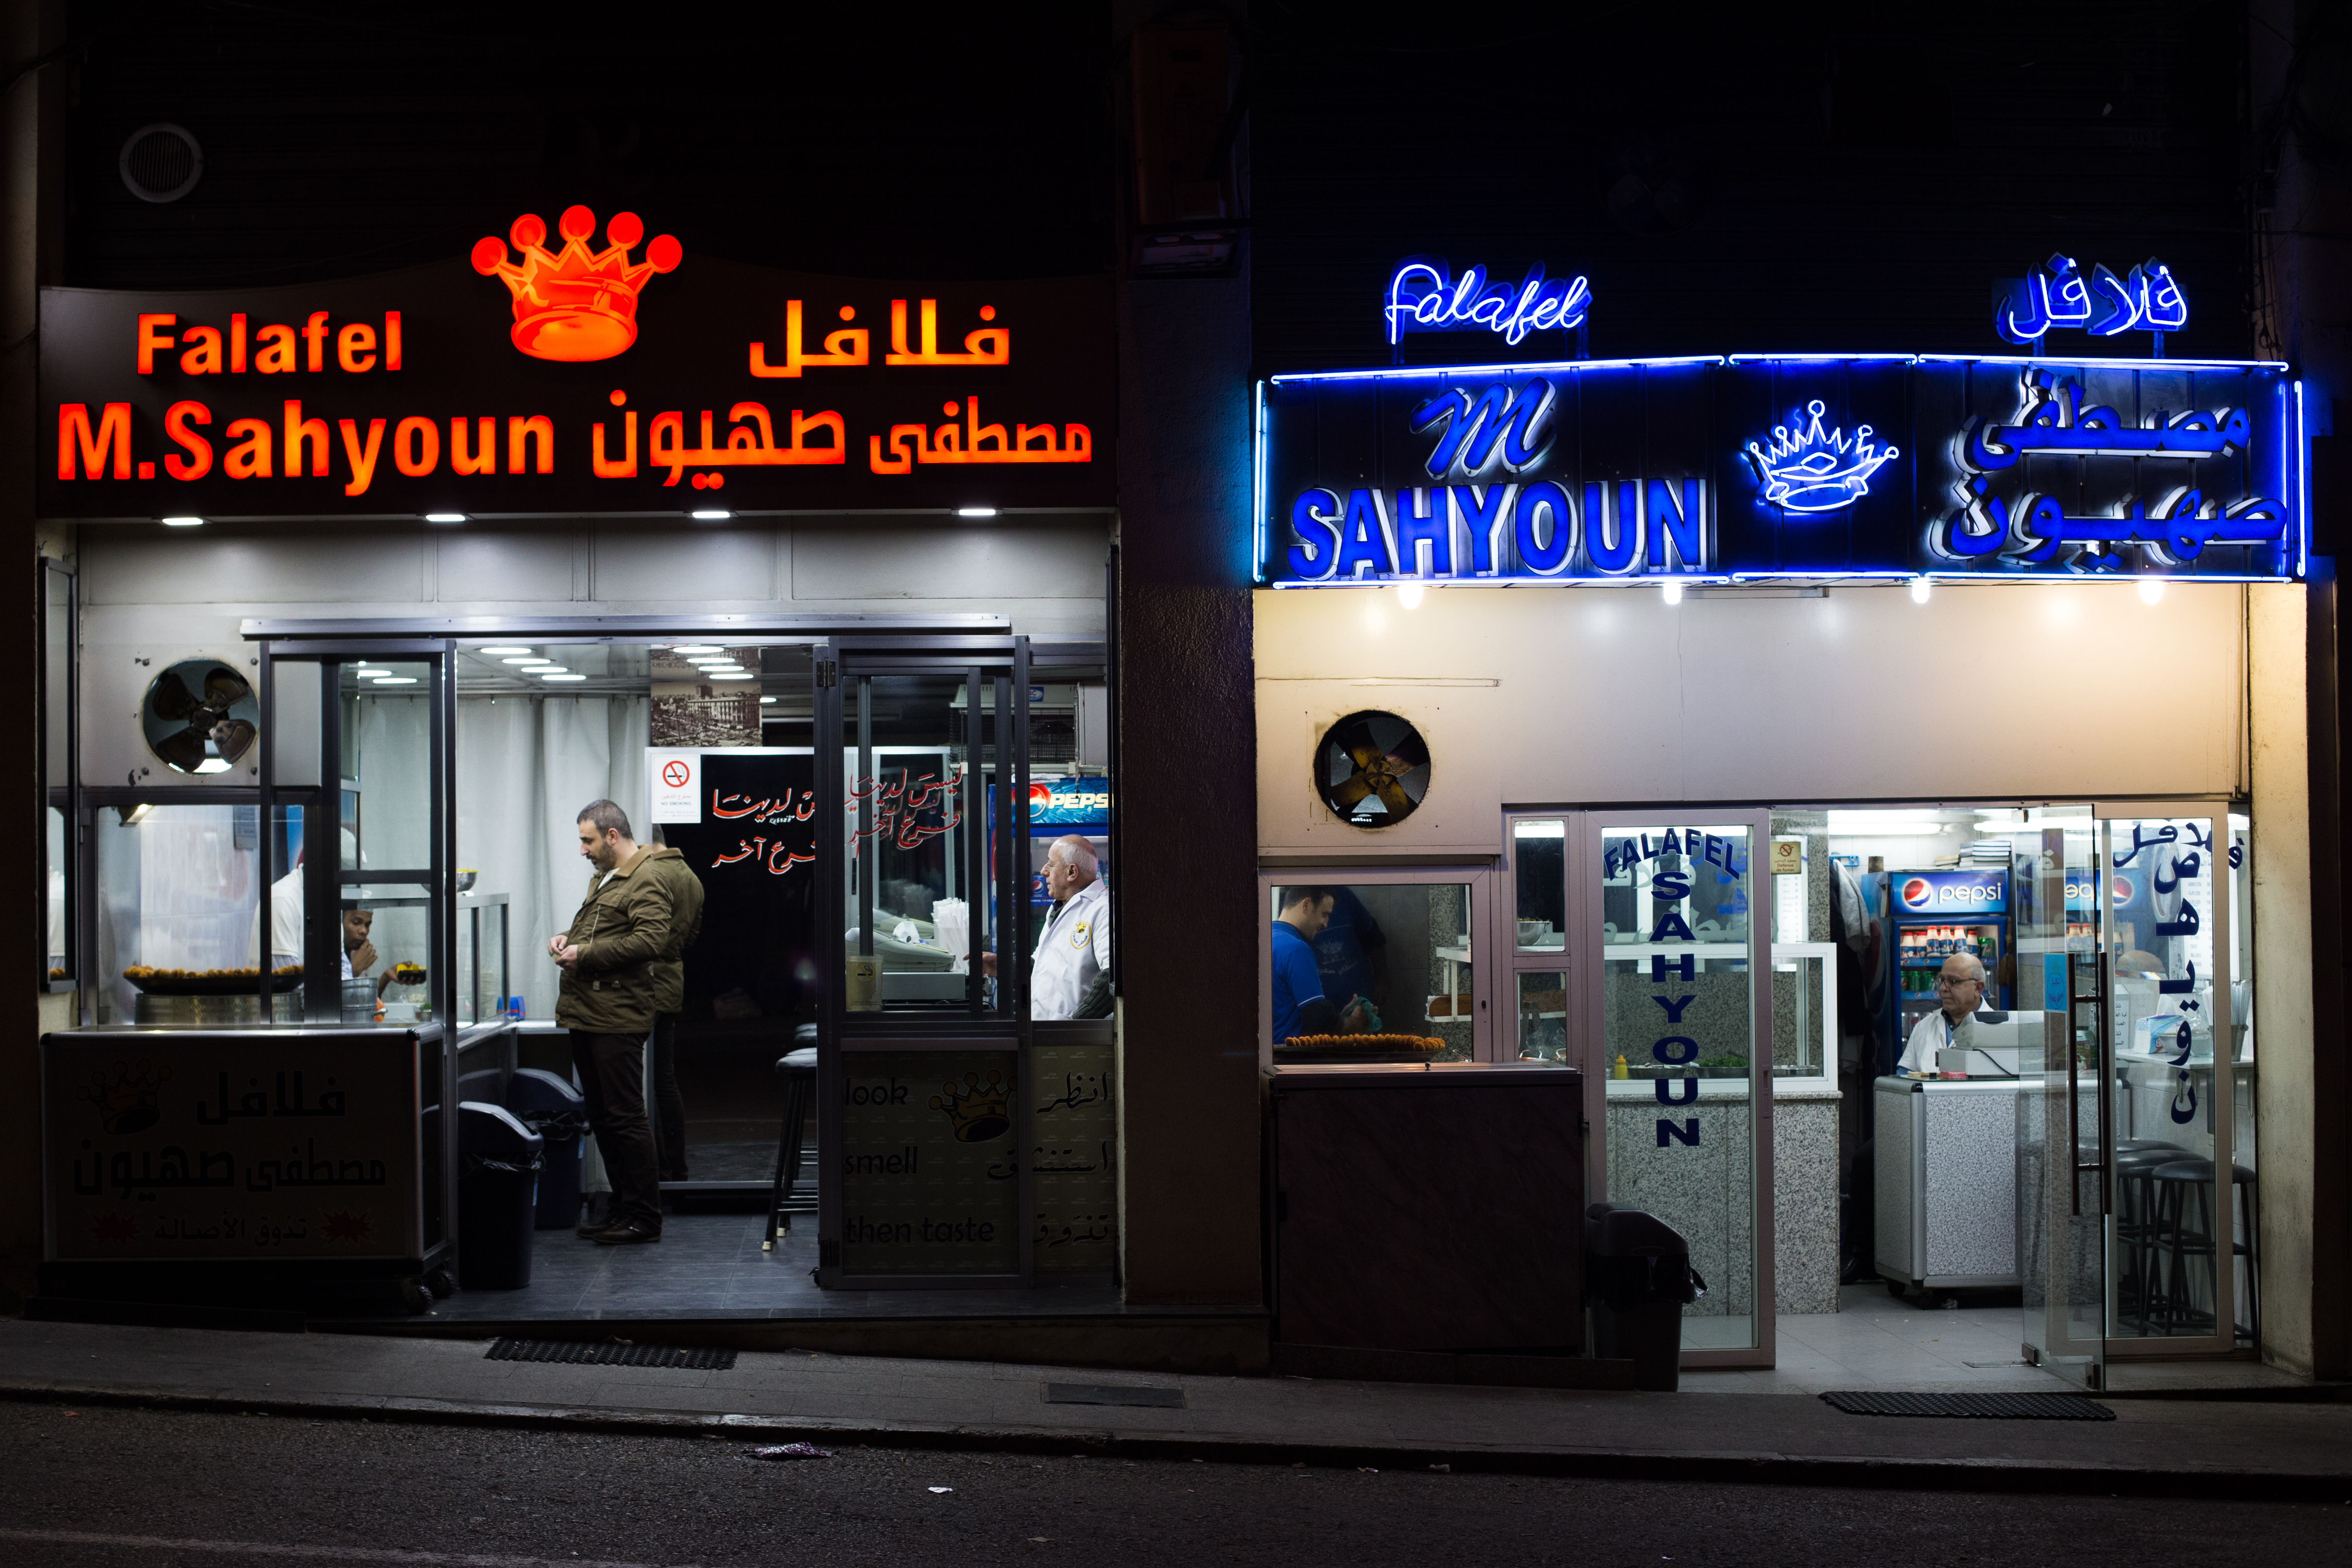 The original Sahyoun's falafel, right, is now run by Zouhair Sahyoun. He no longer speaks to his brother Fouad, who runs the red Falafel M. Sahyoun on the left.